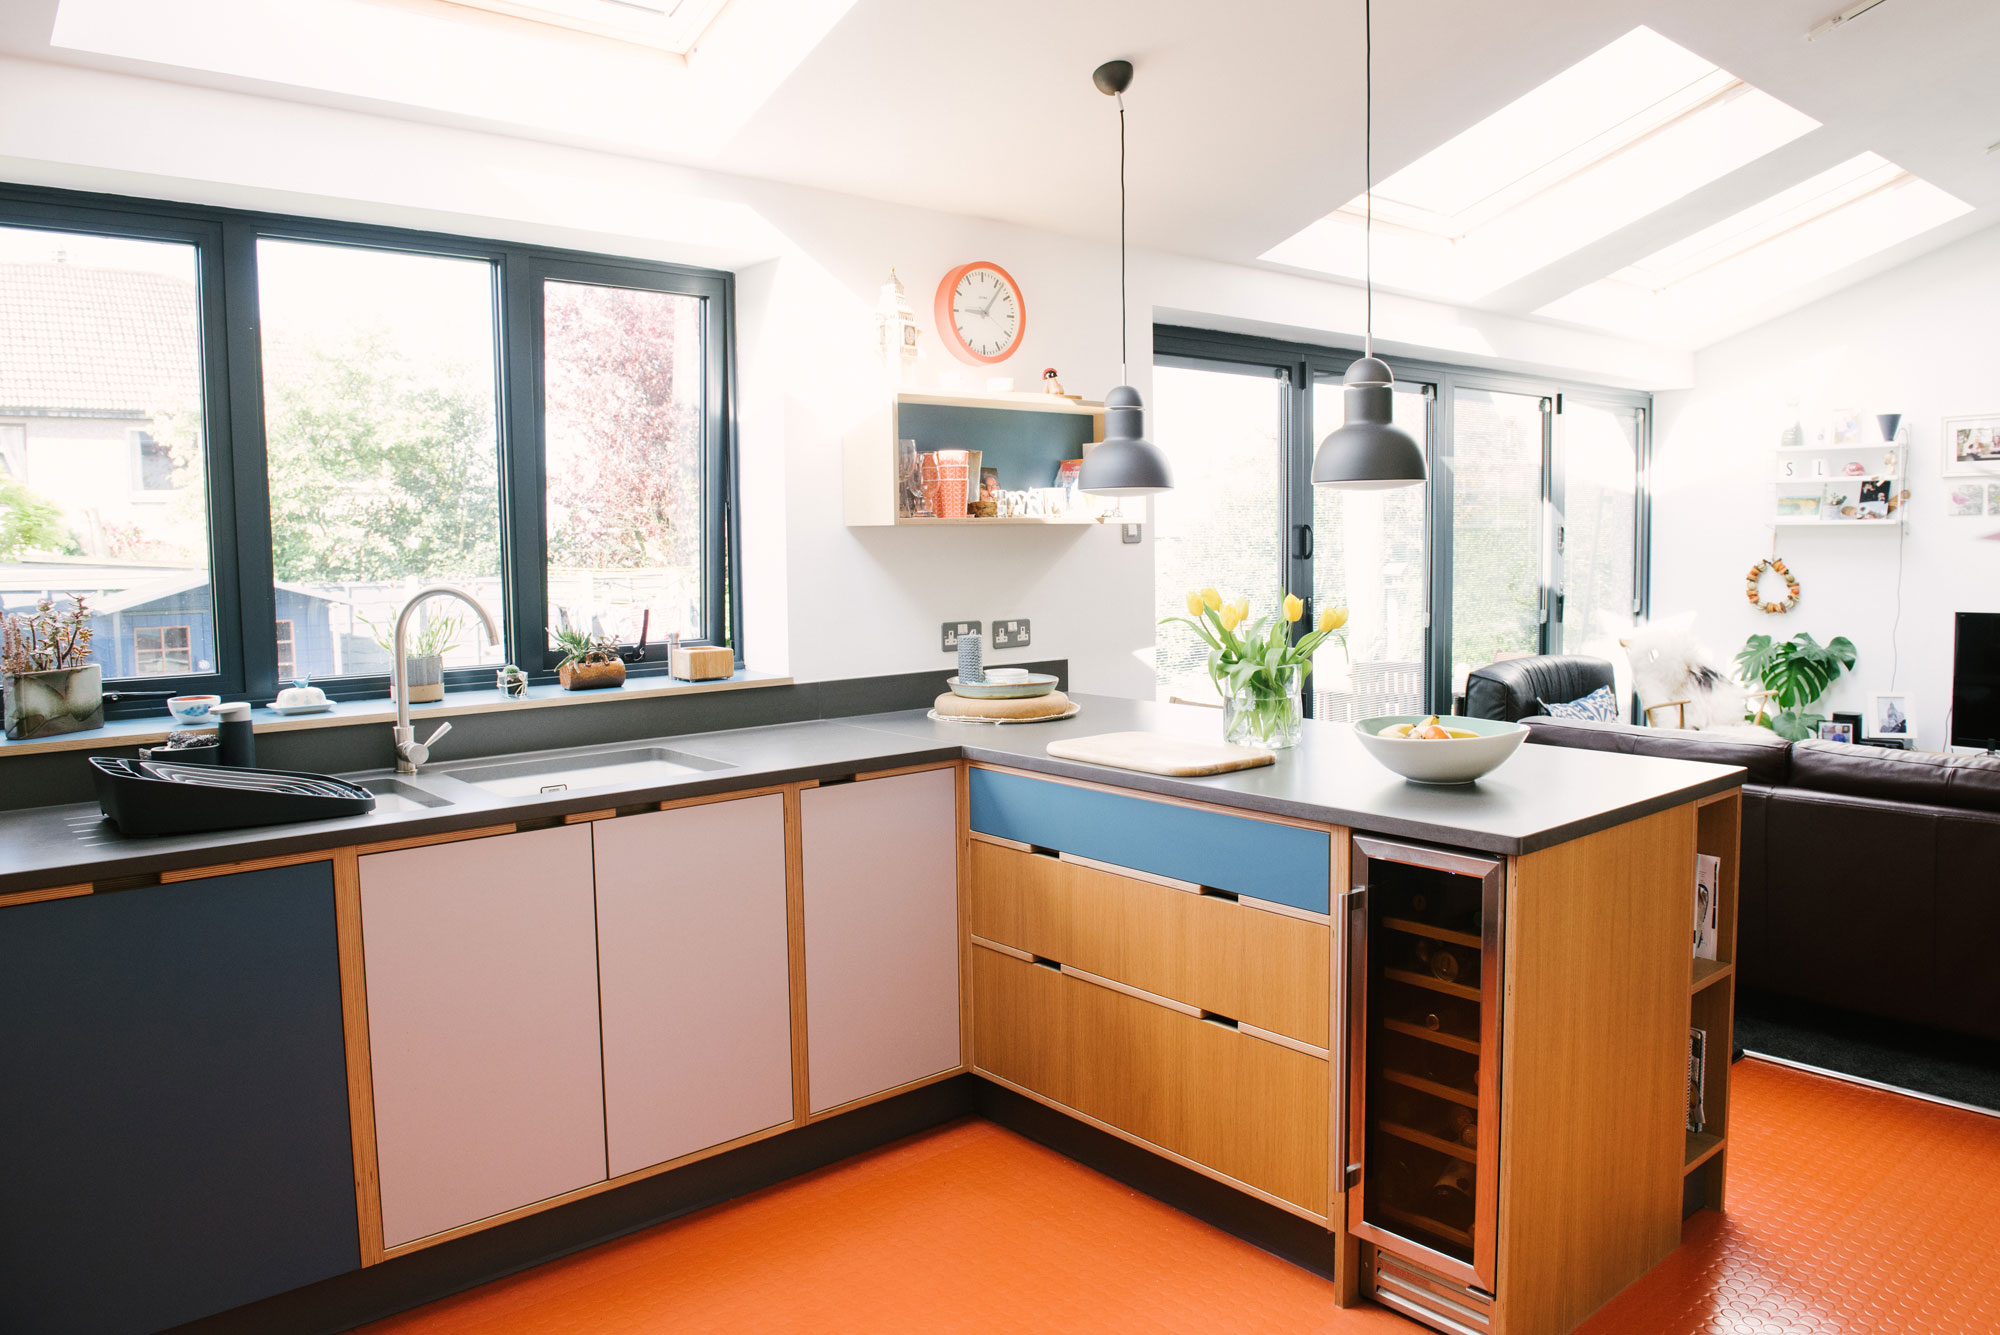 Plywood Kitchen With Orange Floor Showing Wine Fridge